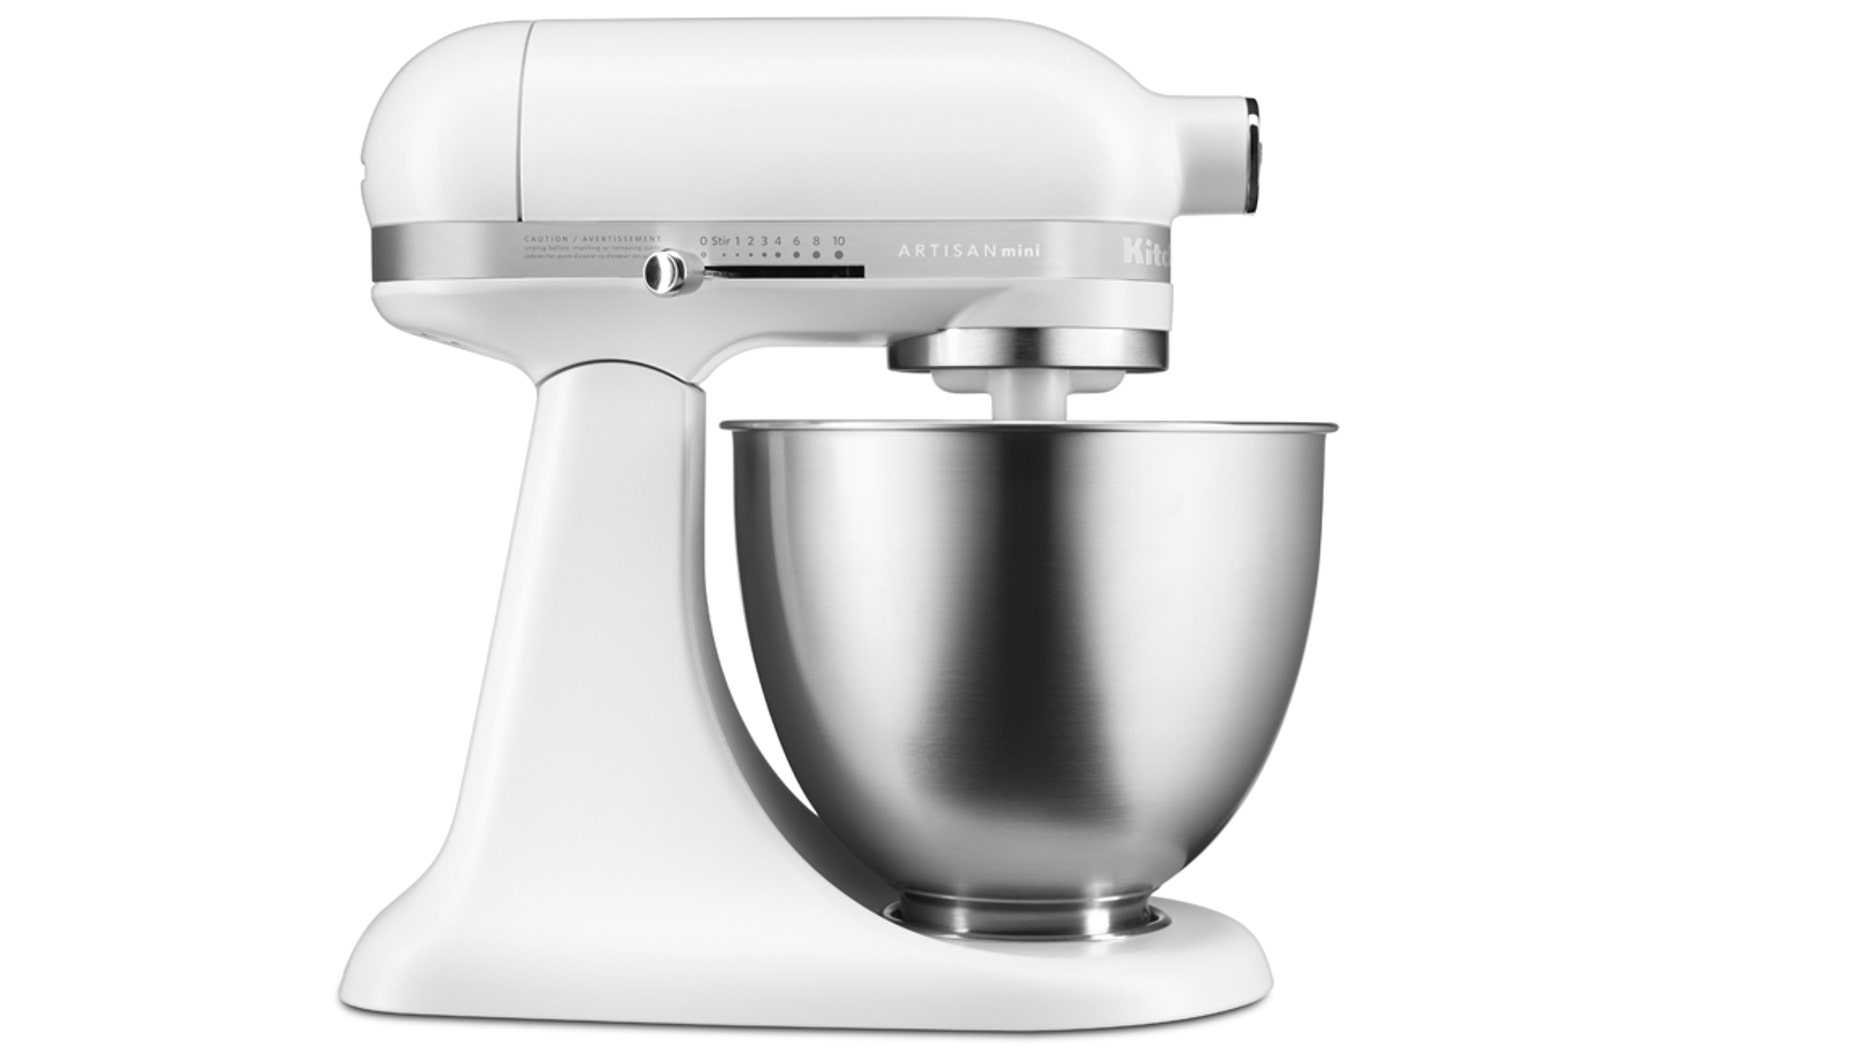 10 top kitchen tech holiday gift ideas   Fox News Cool Kitchen Tech Ideas on cool social ideas, cool toys ideas, cool space ideas, cool water ideas, cool blog ideas, cool style ideas, cool radio ideas, cool innovation ideas, cool legal ideas, cool film ideas, cool sports ideas, cool personal ideas, cool math ideas, cool computers ideas, cool technology, cool unique car accessories, cool entertainment ideas, cool fitness ideas, cool gear ideas, cool fire ideas,